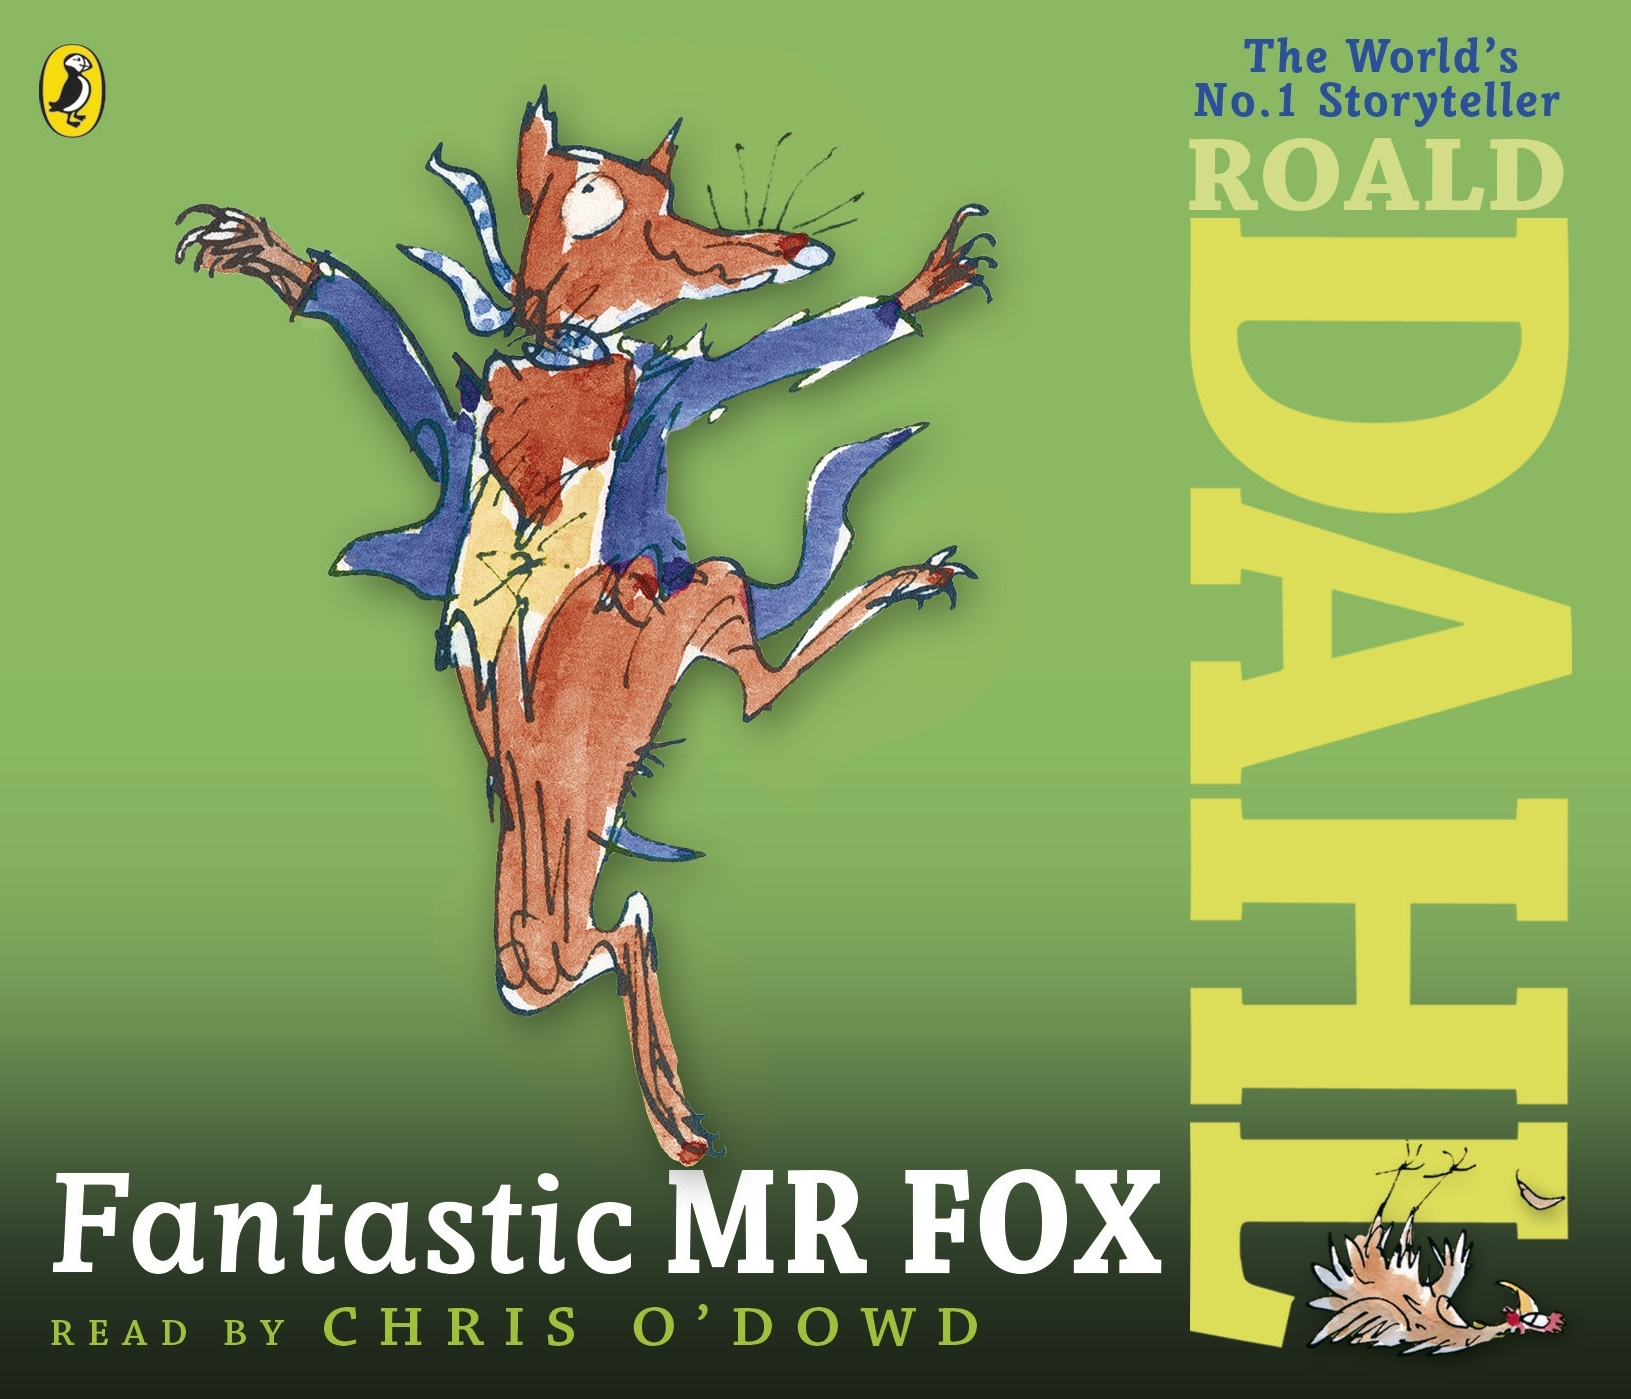 fantastic mr fox book report Fantastic mr fox publisher: knopf books for young readers revised edition [ roald dahl] on amazoncom free shipping on qualifying offers excellent.